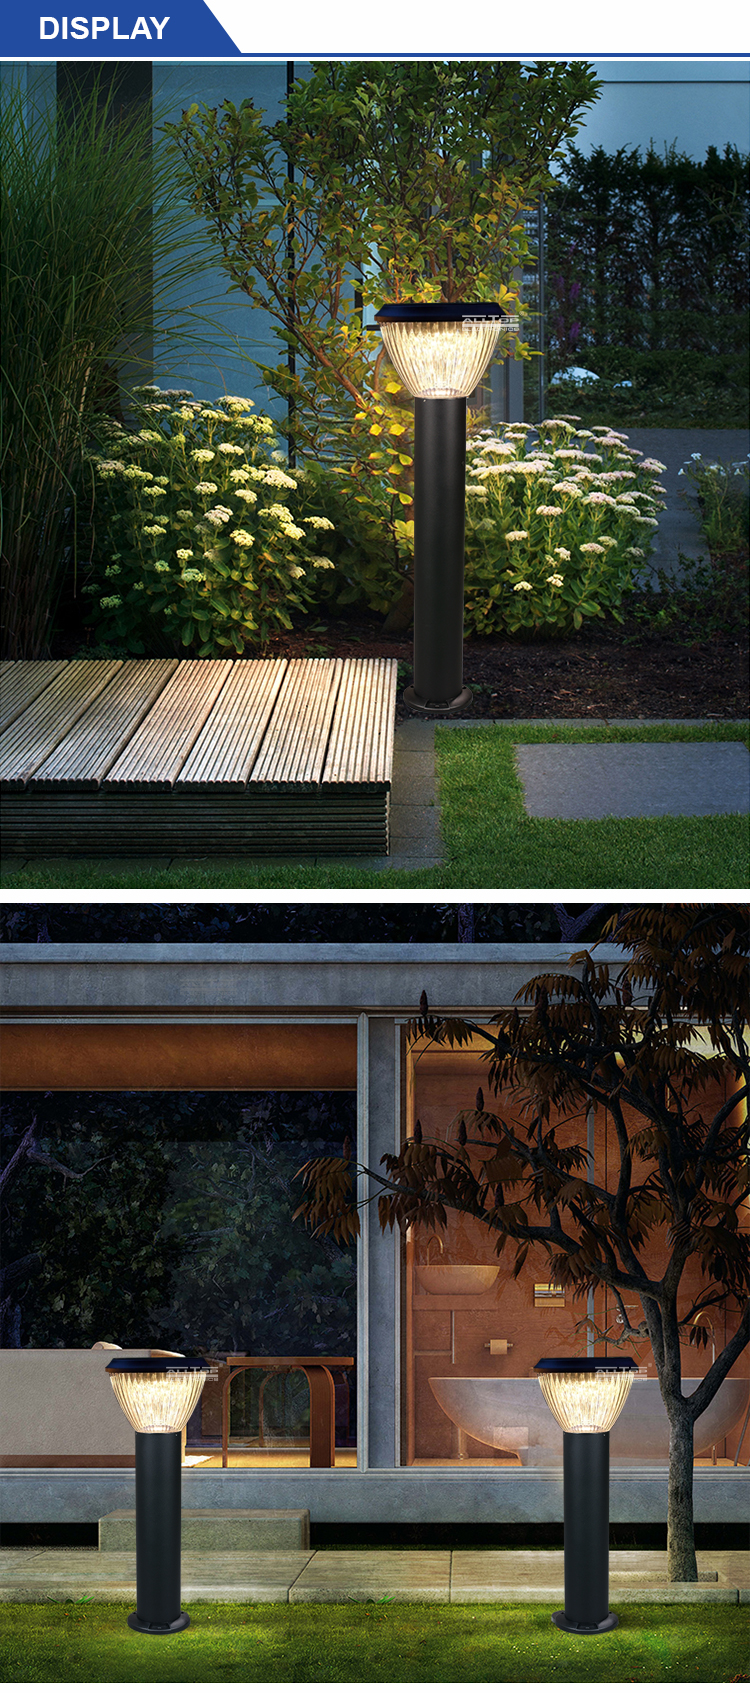 ALLTOP best solar lawn lights-9